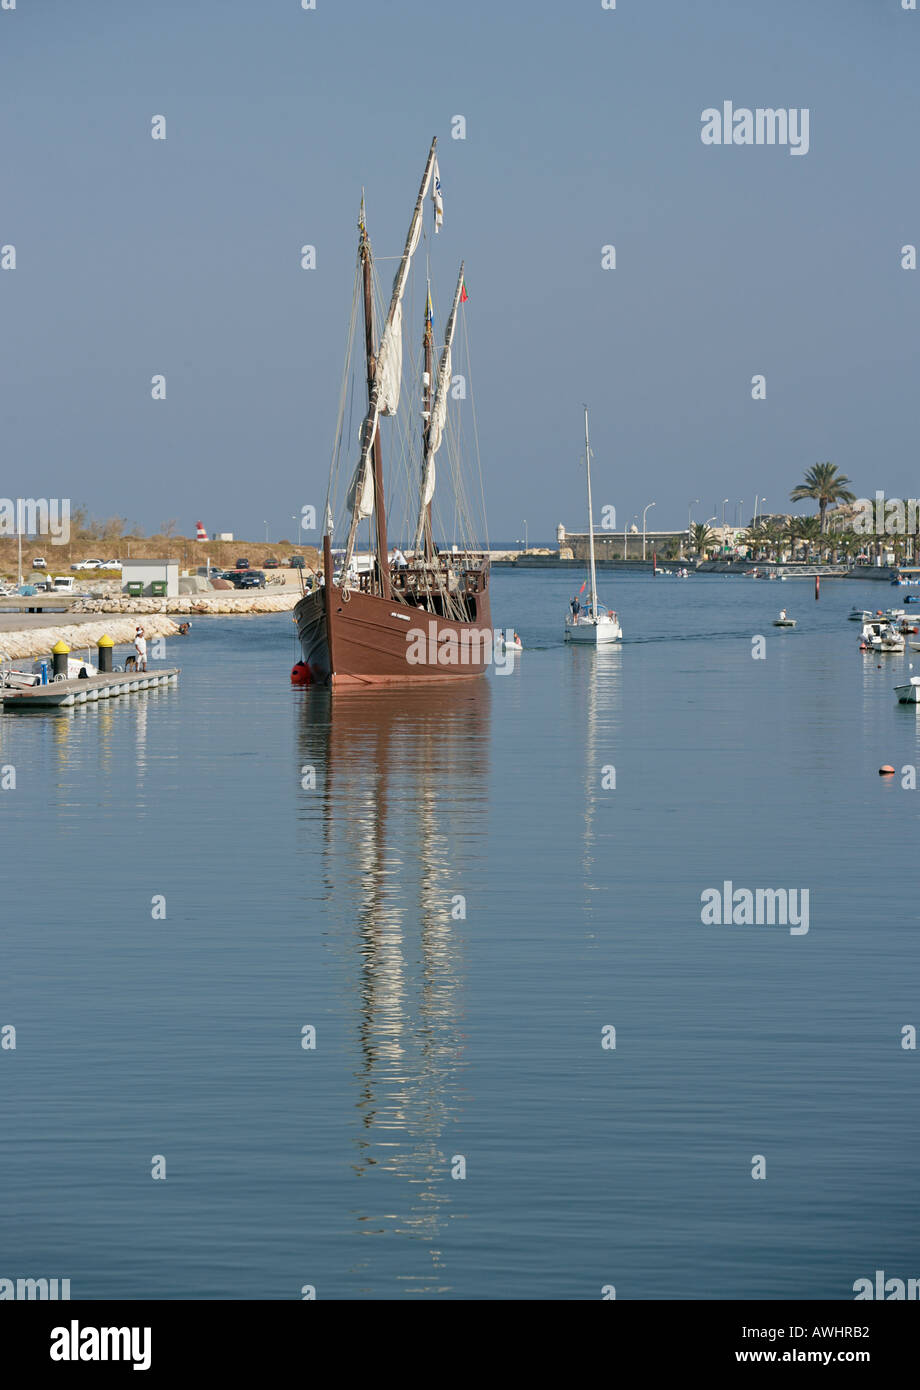 A reproduction of an old caravel comes into the canal leading in from the ocean into the town of Logos Portugal. - Stock Image